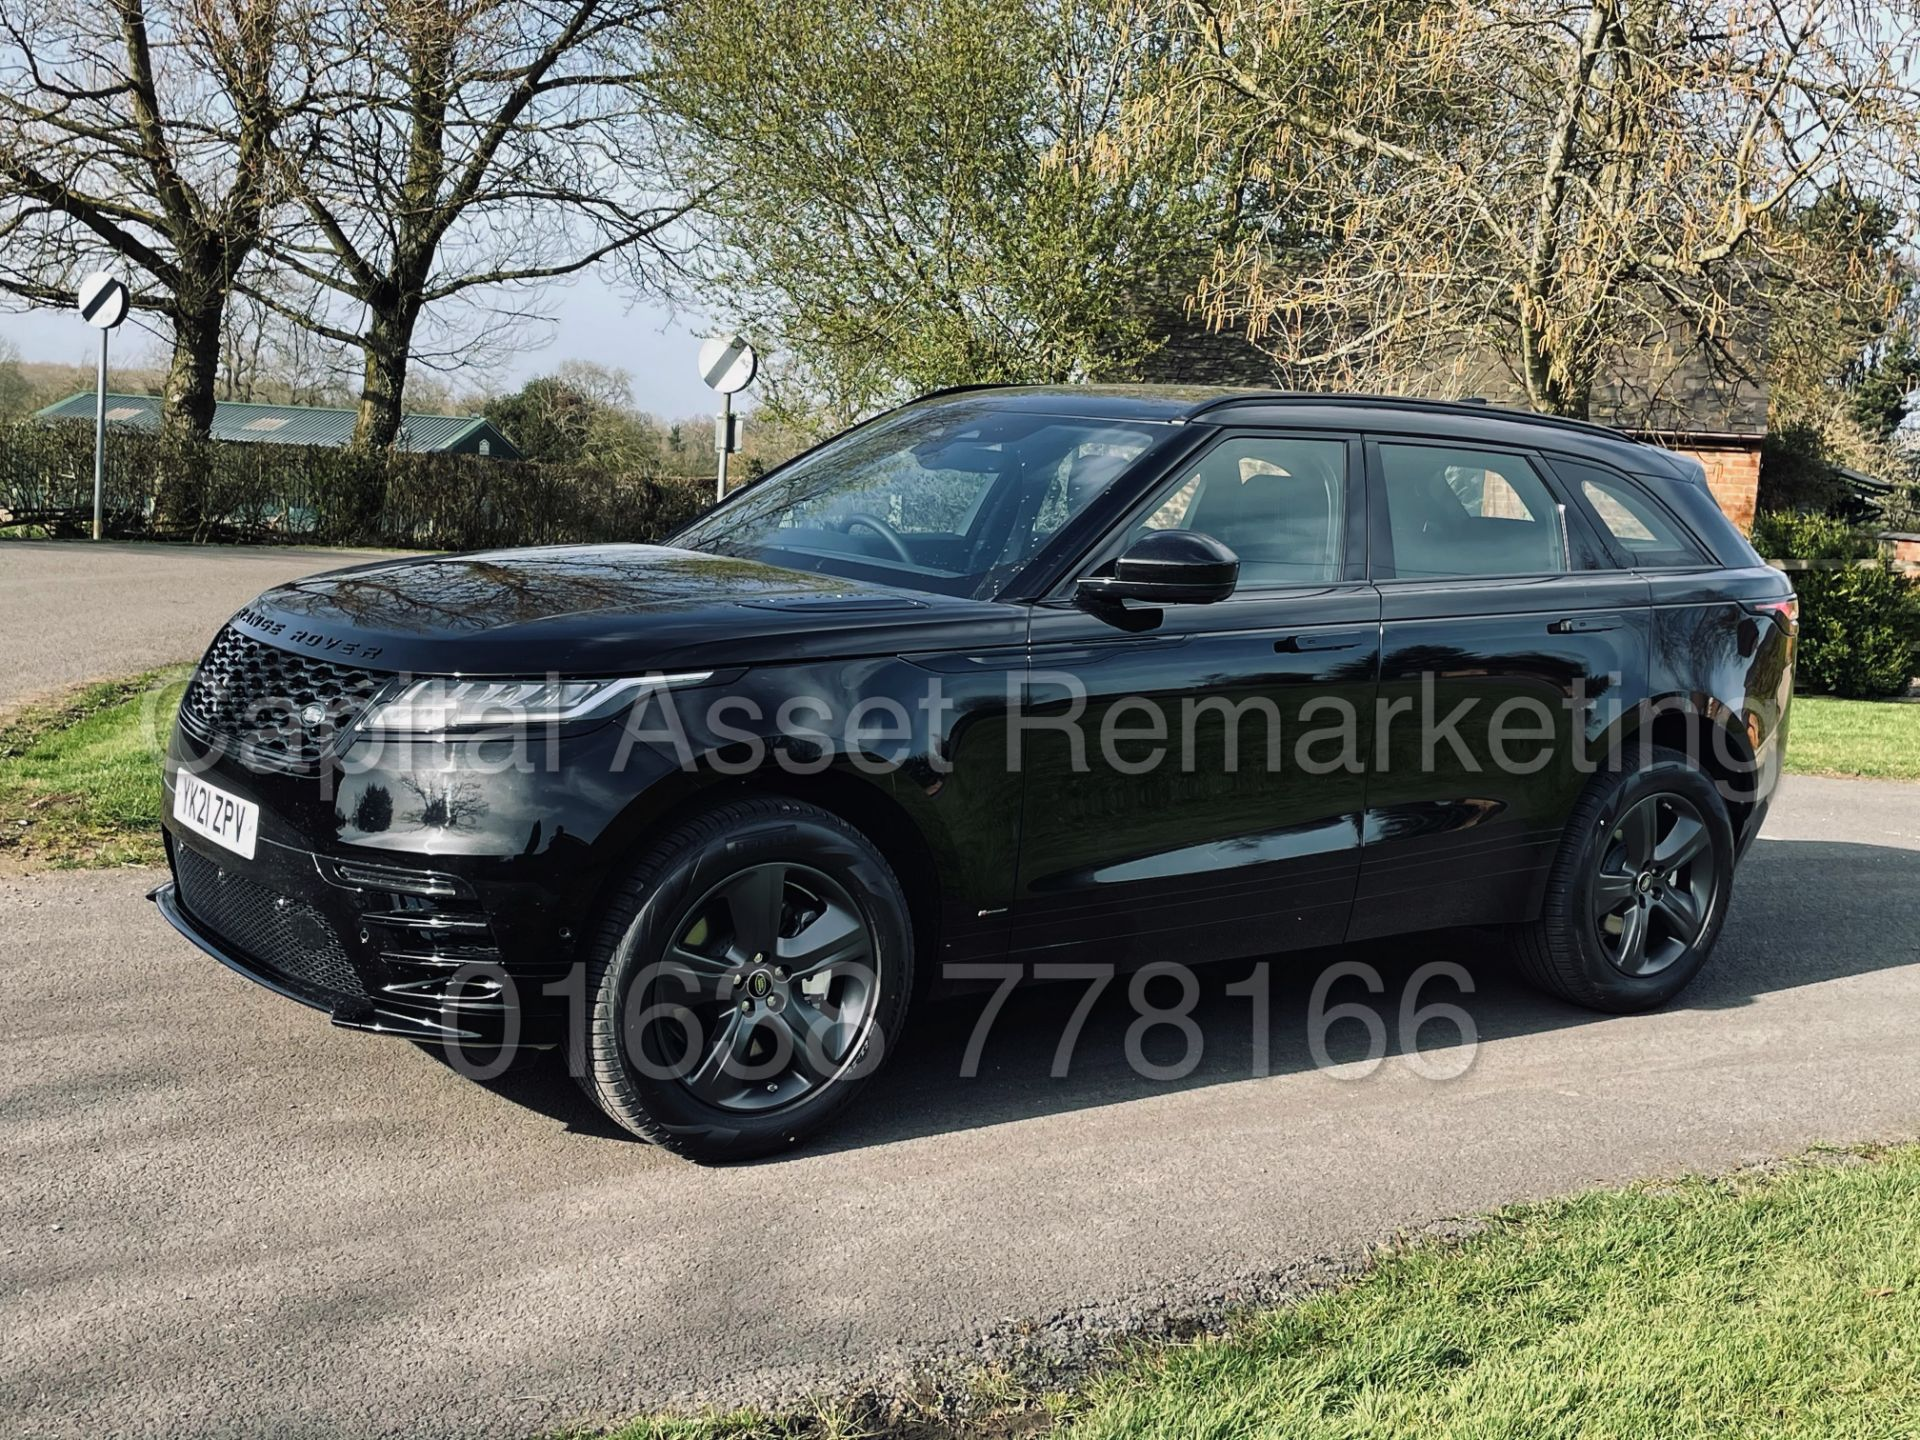 (On Sale) RANGE ROVER VELAR *R-DYNAMIC* SUV (2021) *8 SPEED AUTO - LEATHER* (DELIVERY MILES) - Image 7 of 50